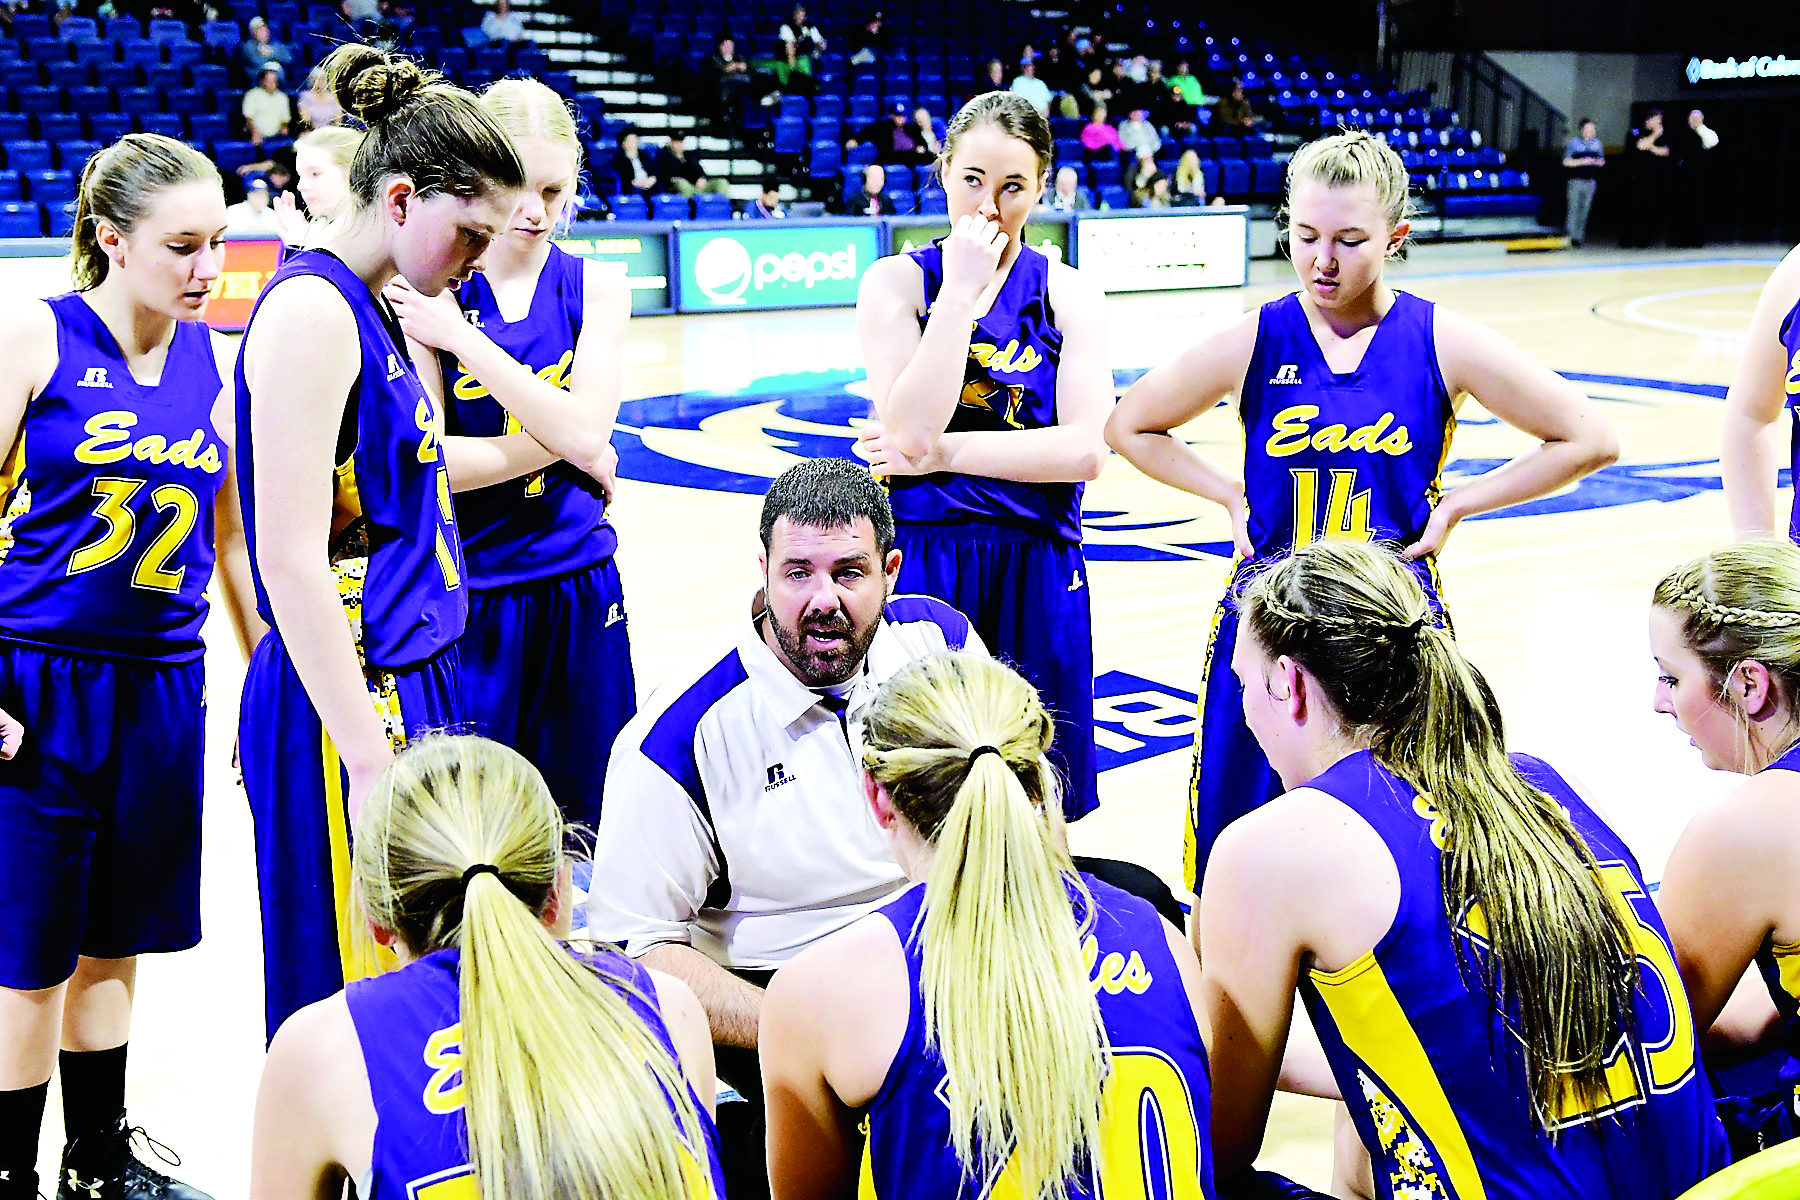 Coach Trey Eder and the Eads Lady Eagles at 1A State Tournament - Photo credit John Schecter